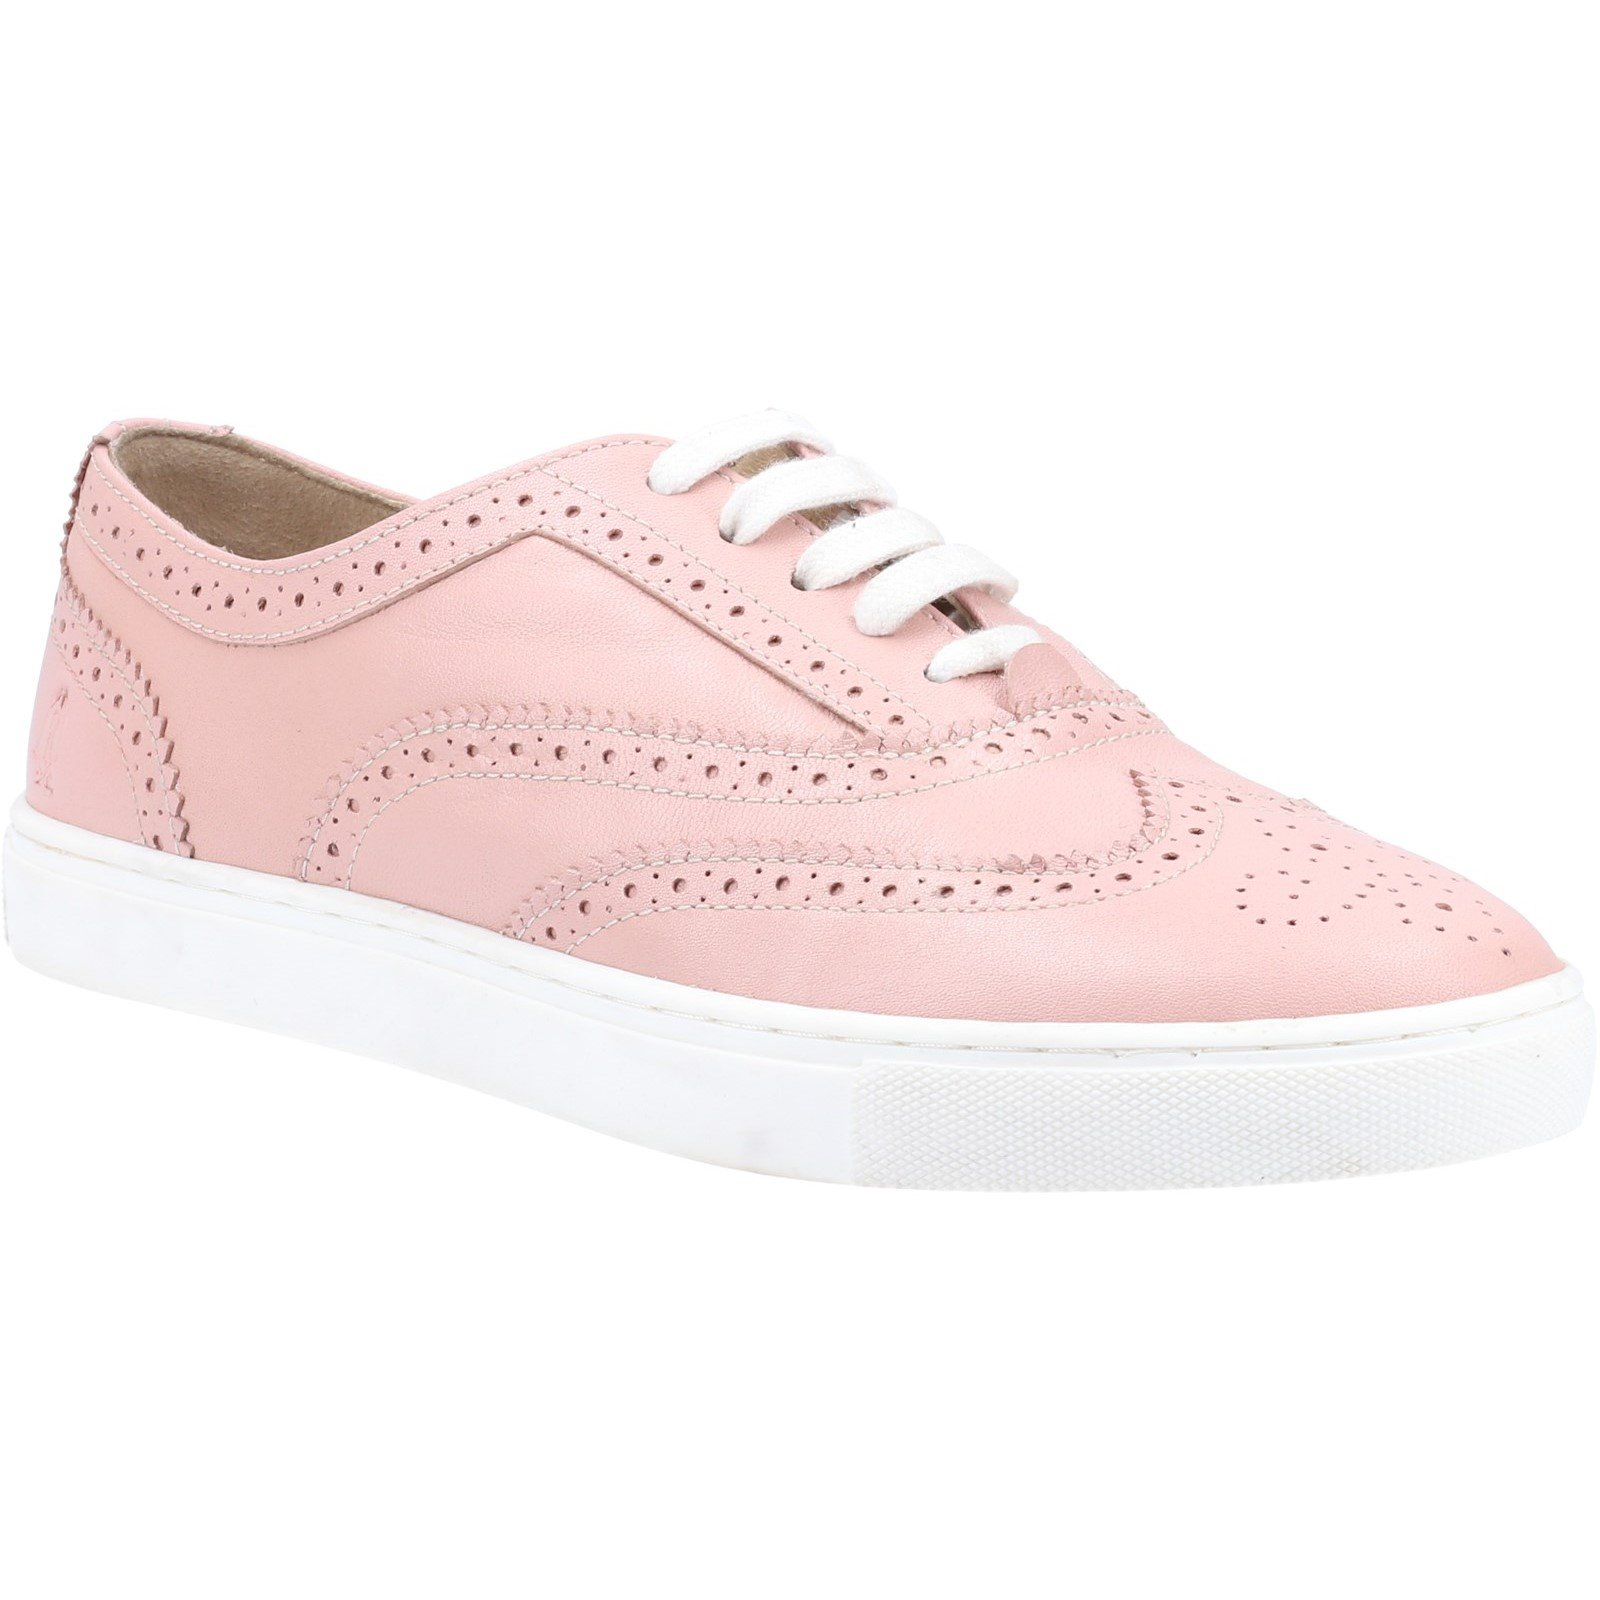 Hush Puppies Women's Tammy Trainer Various Colours 32847 - Blush 3